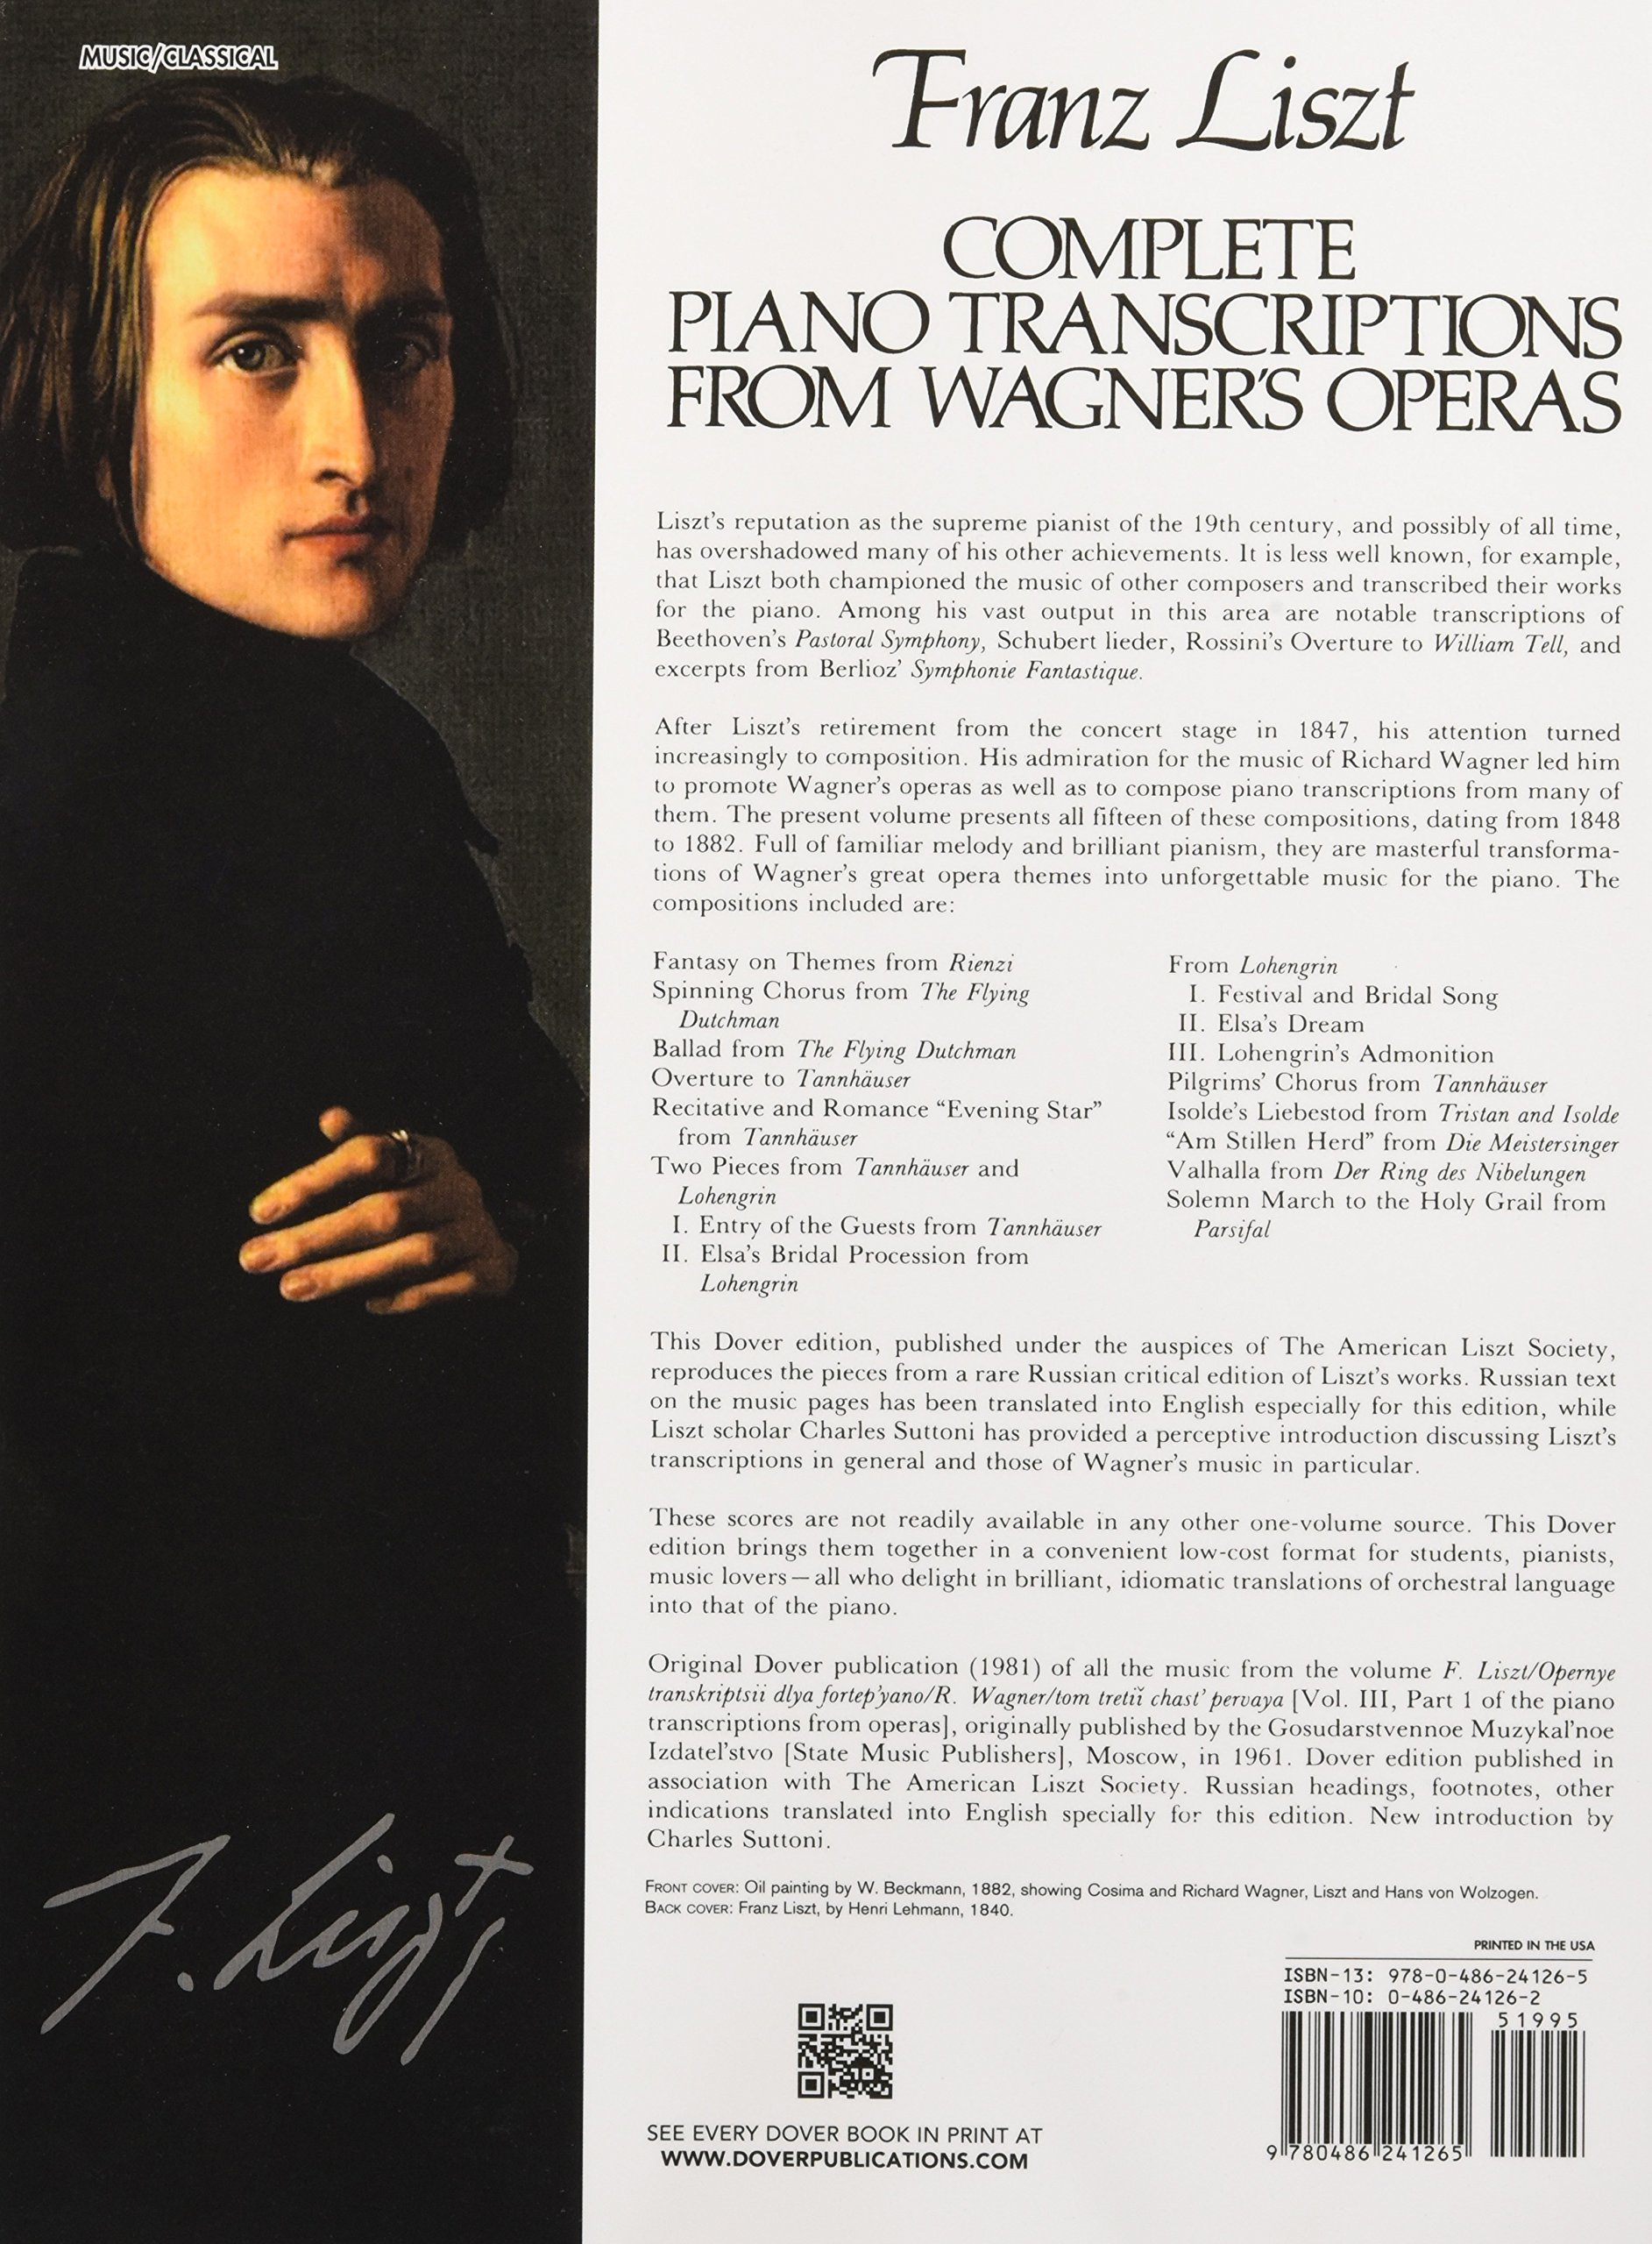 Complete Piano Transcriptions from Wagner's Operas (Dover Music for Piano):  Franz Liszt: 0800759241262: Amazon.com: Books